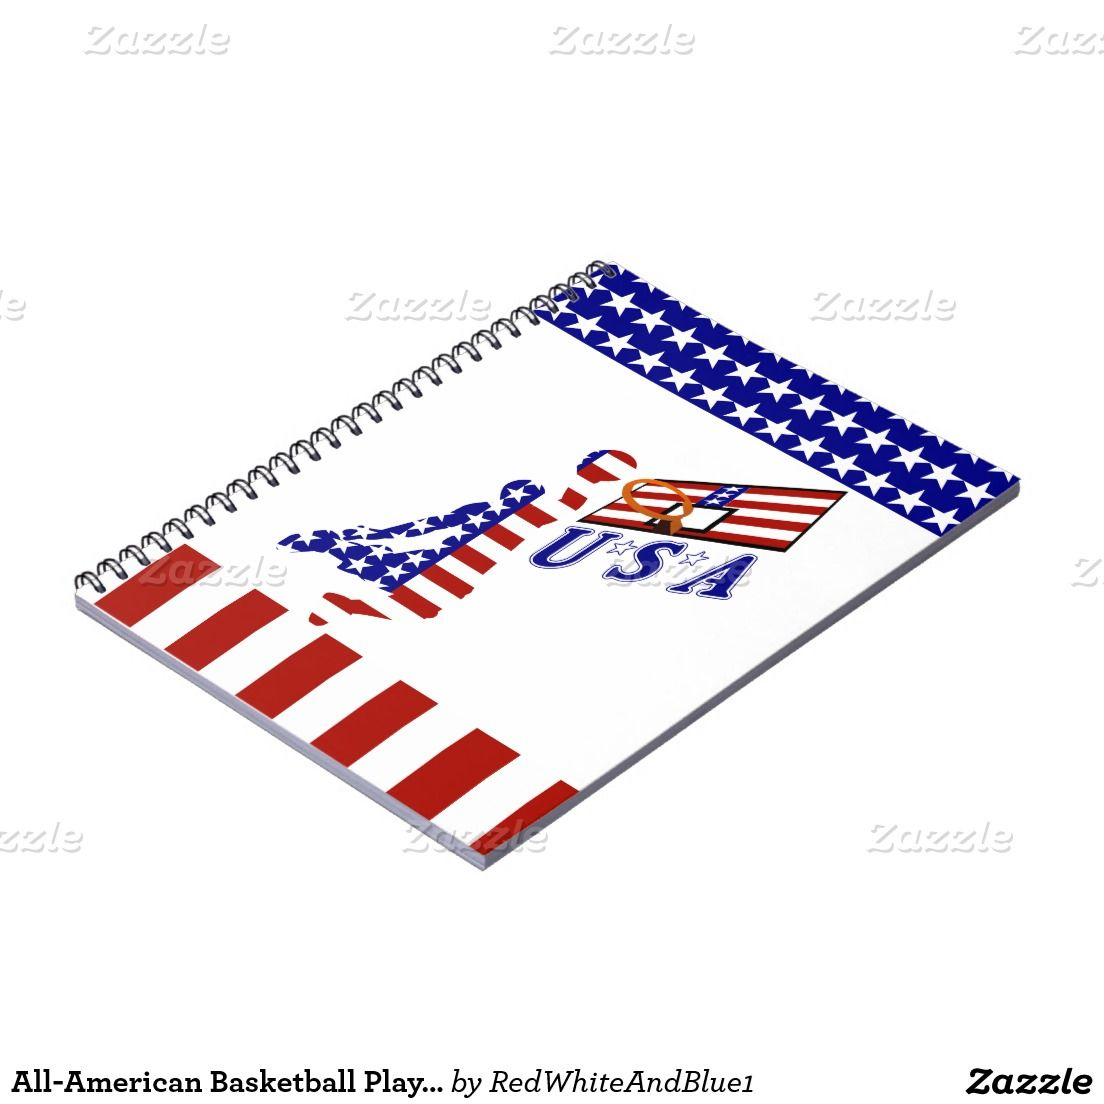 All-American #Basketball Player Notebook #Sports4you #RedWhiteAndBlue1 #Gravityx9